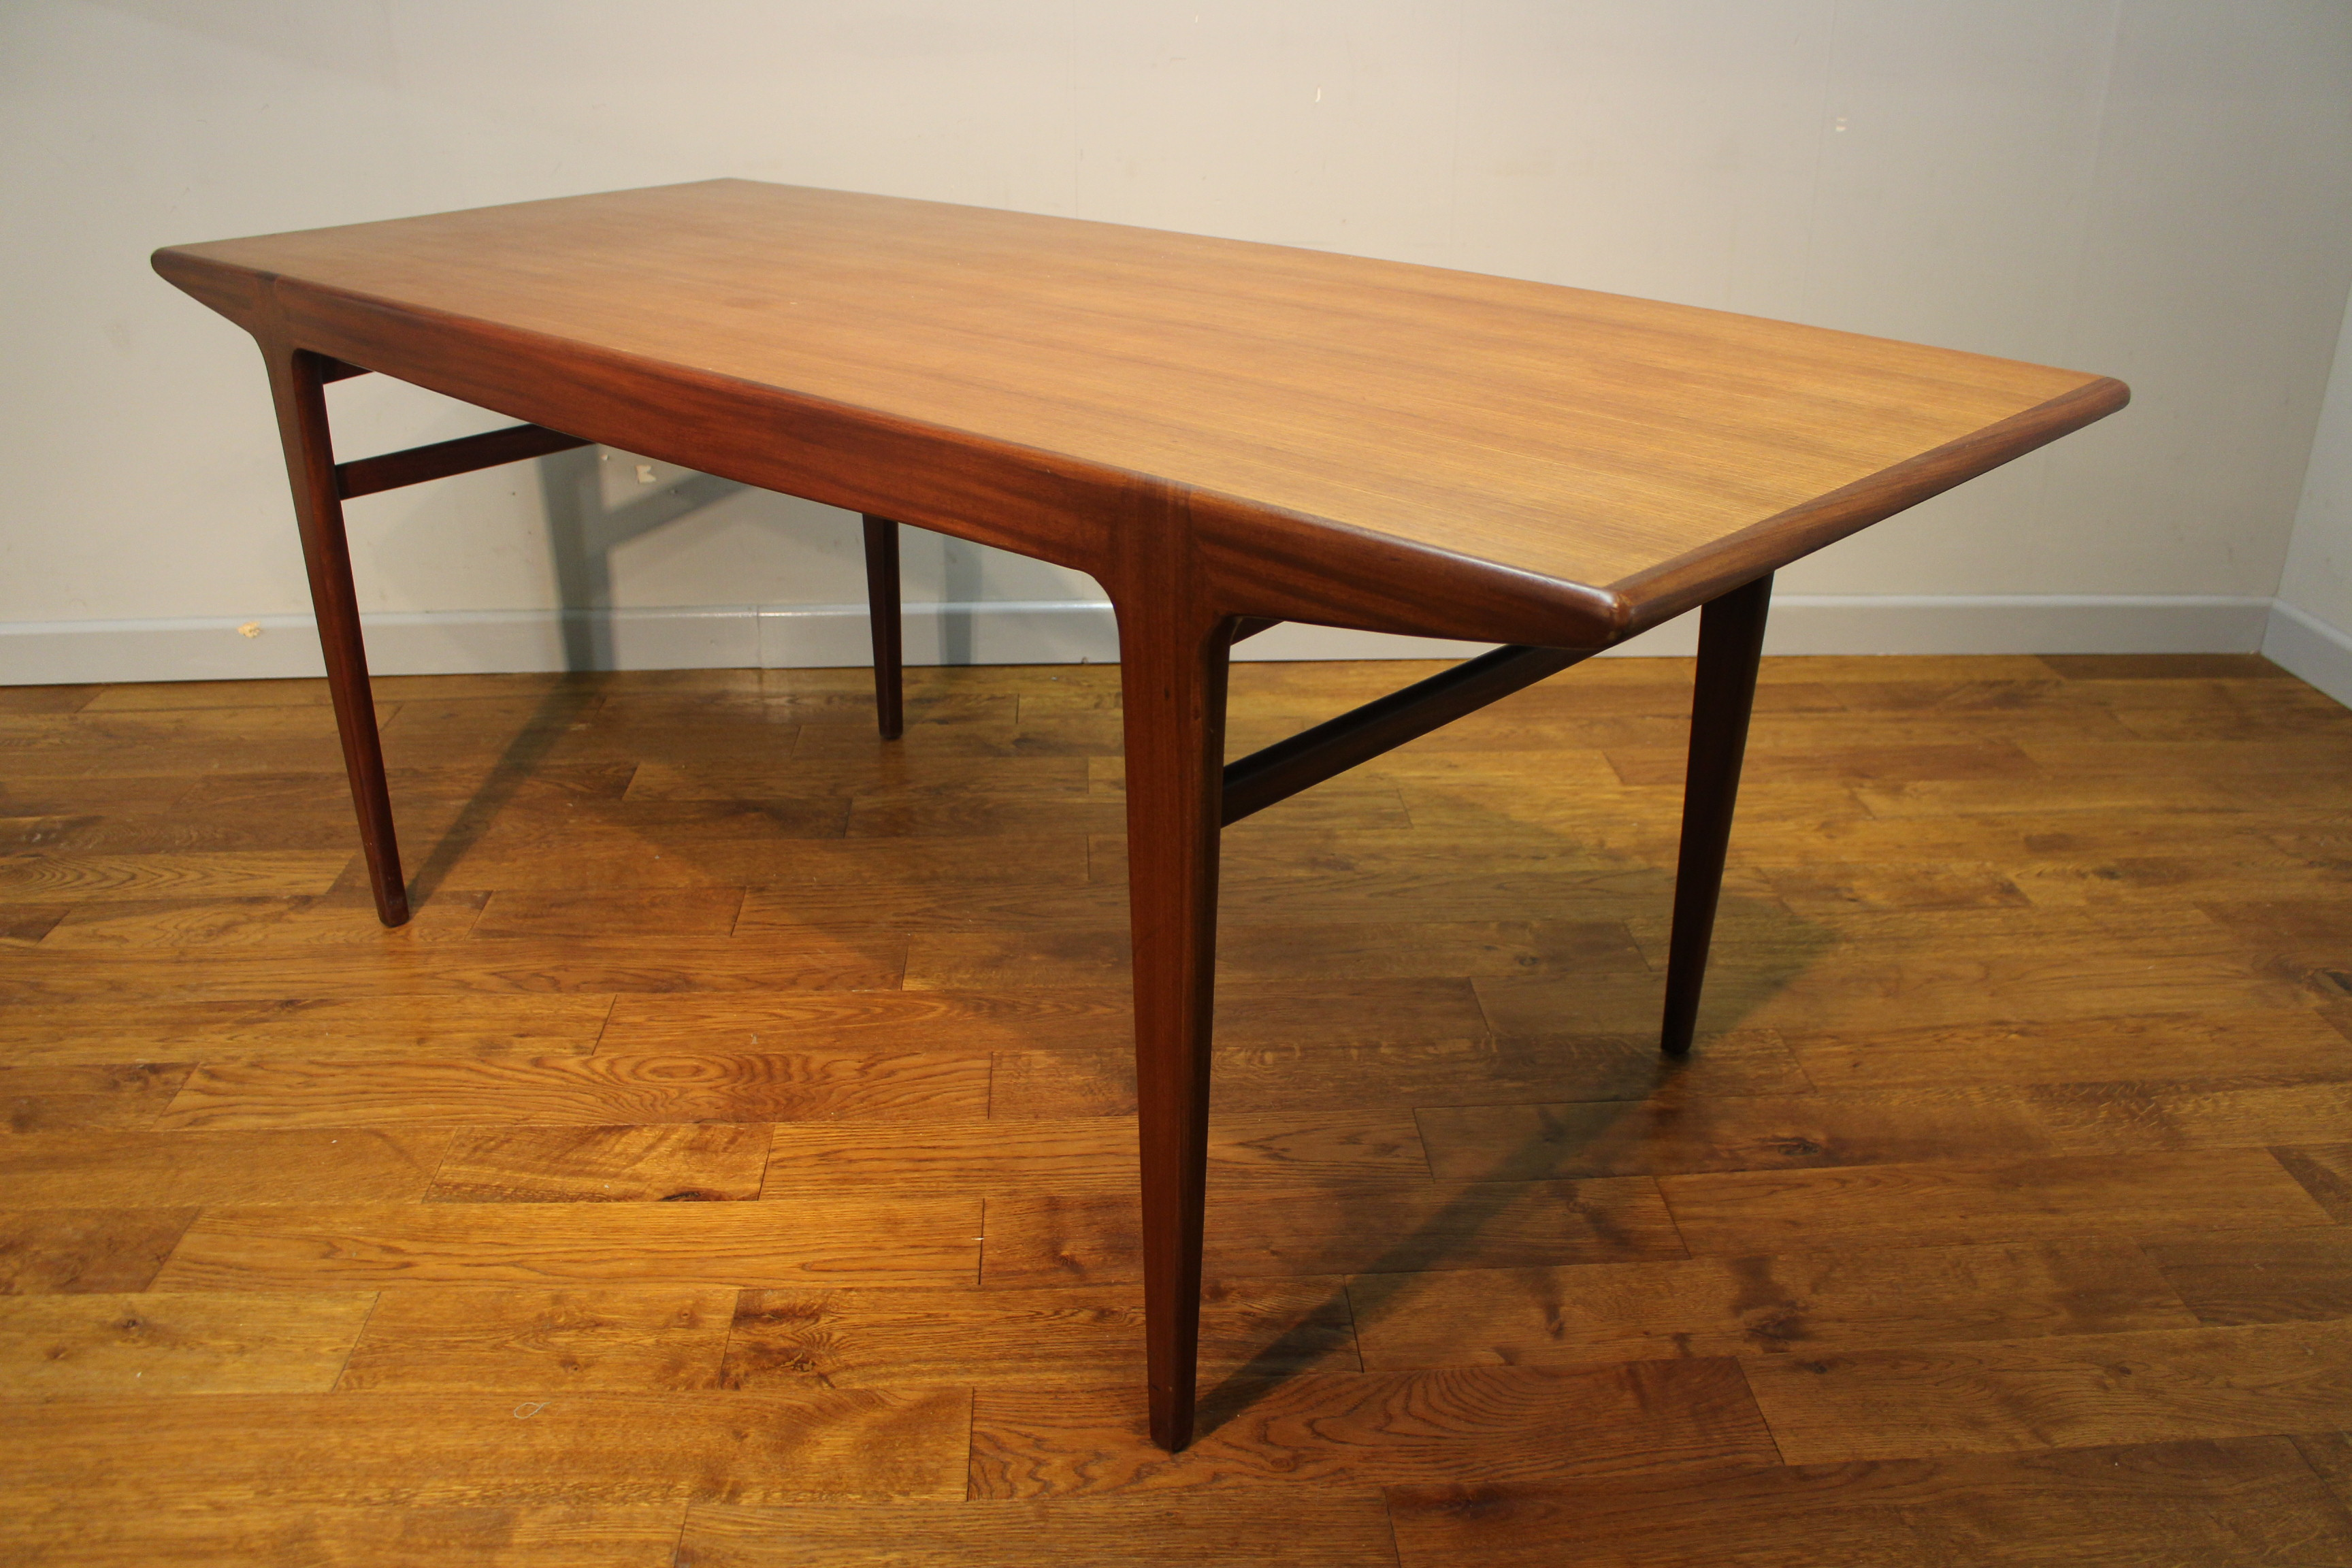 Mid 1960s a younger teak fonseca 6 seat dining table by john herbert vintage retro - Sofa herbergt s werelds ...